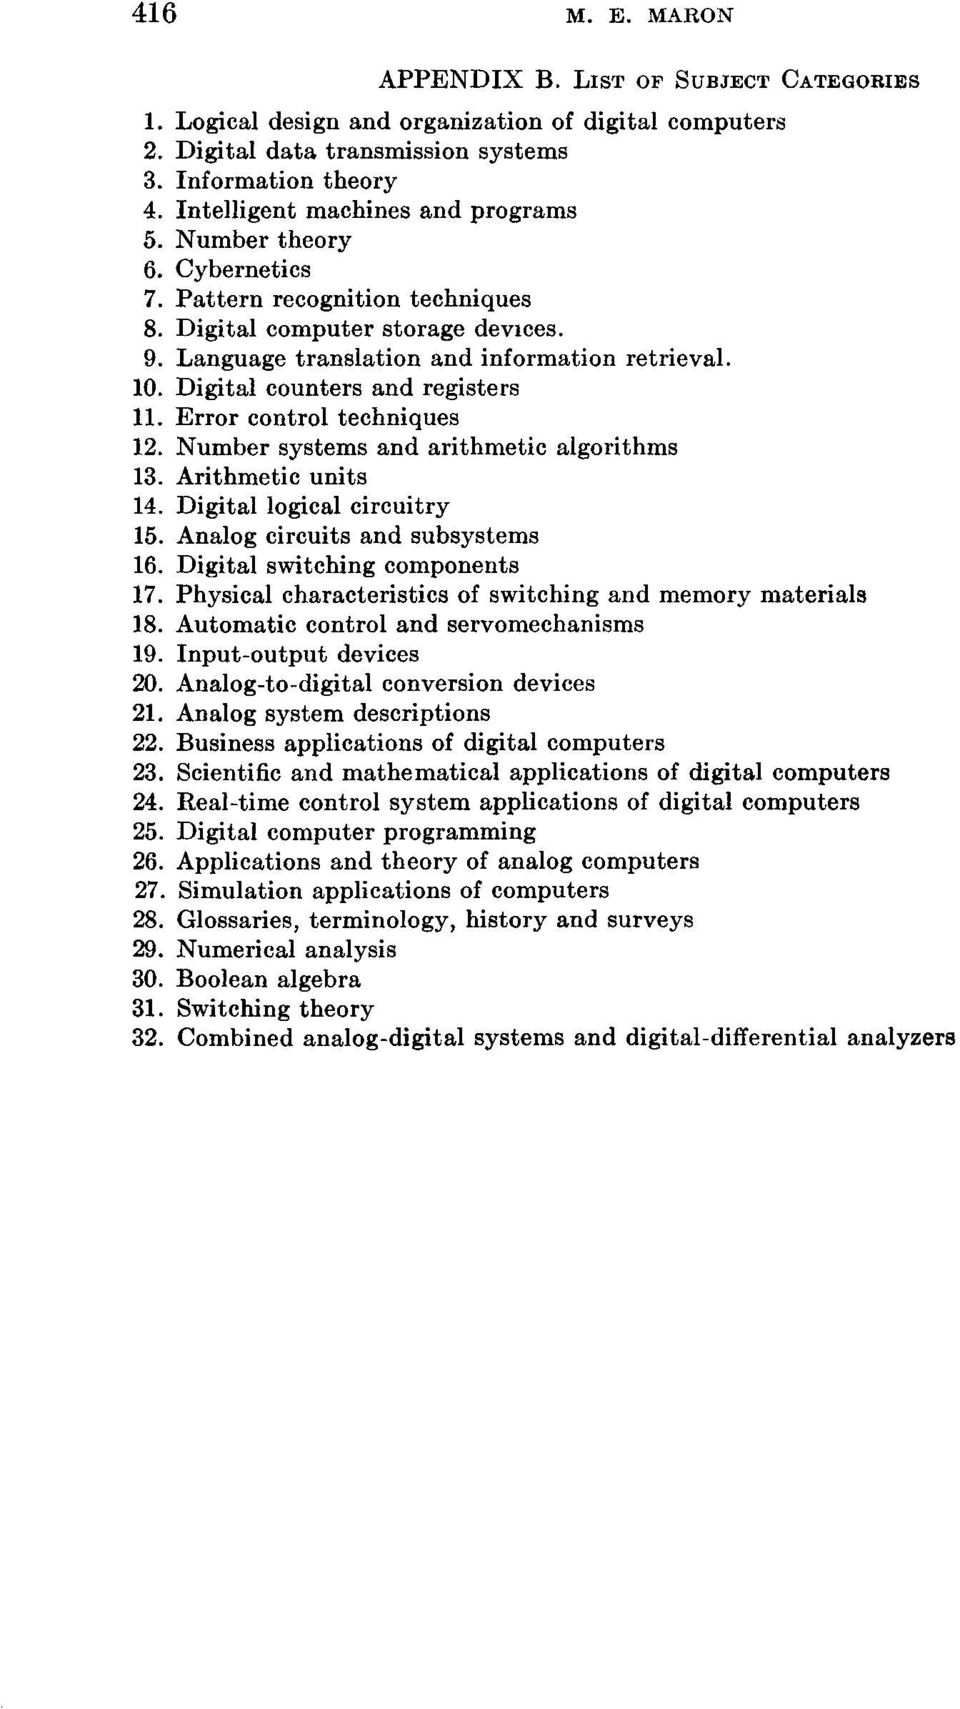 Digital counters and registers 11. Error control techniques 12. Number systems and arithmetic algorithms 13. Arithmetic units 14. Digital logical circuitry 15. Analog circuits and subsystems 16.